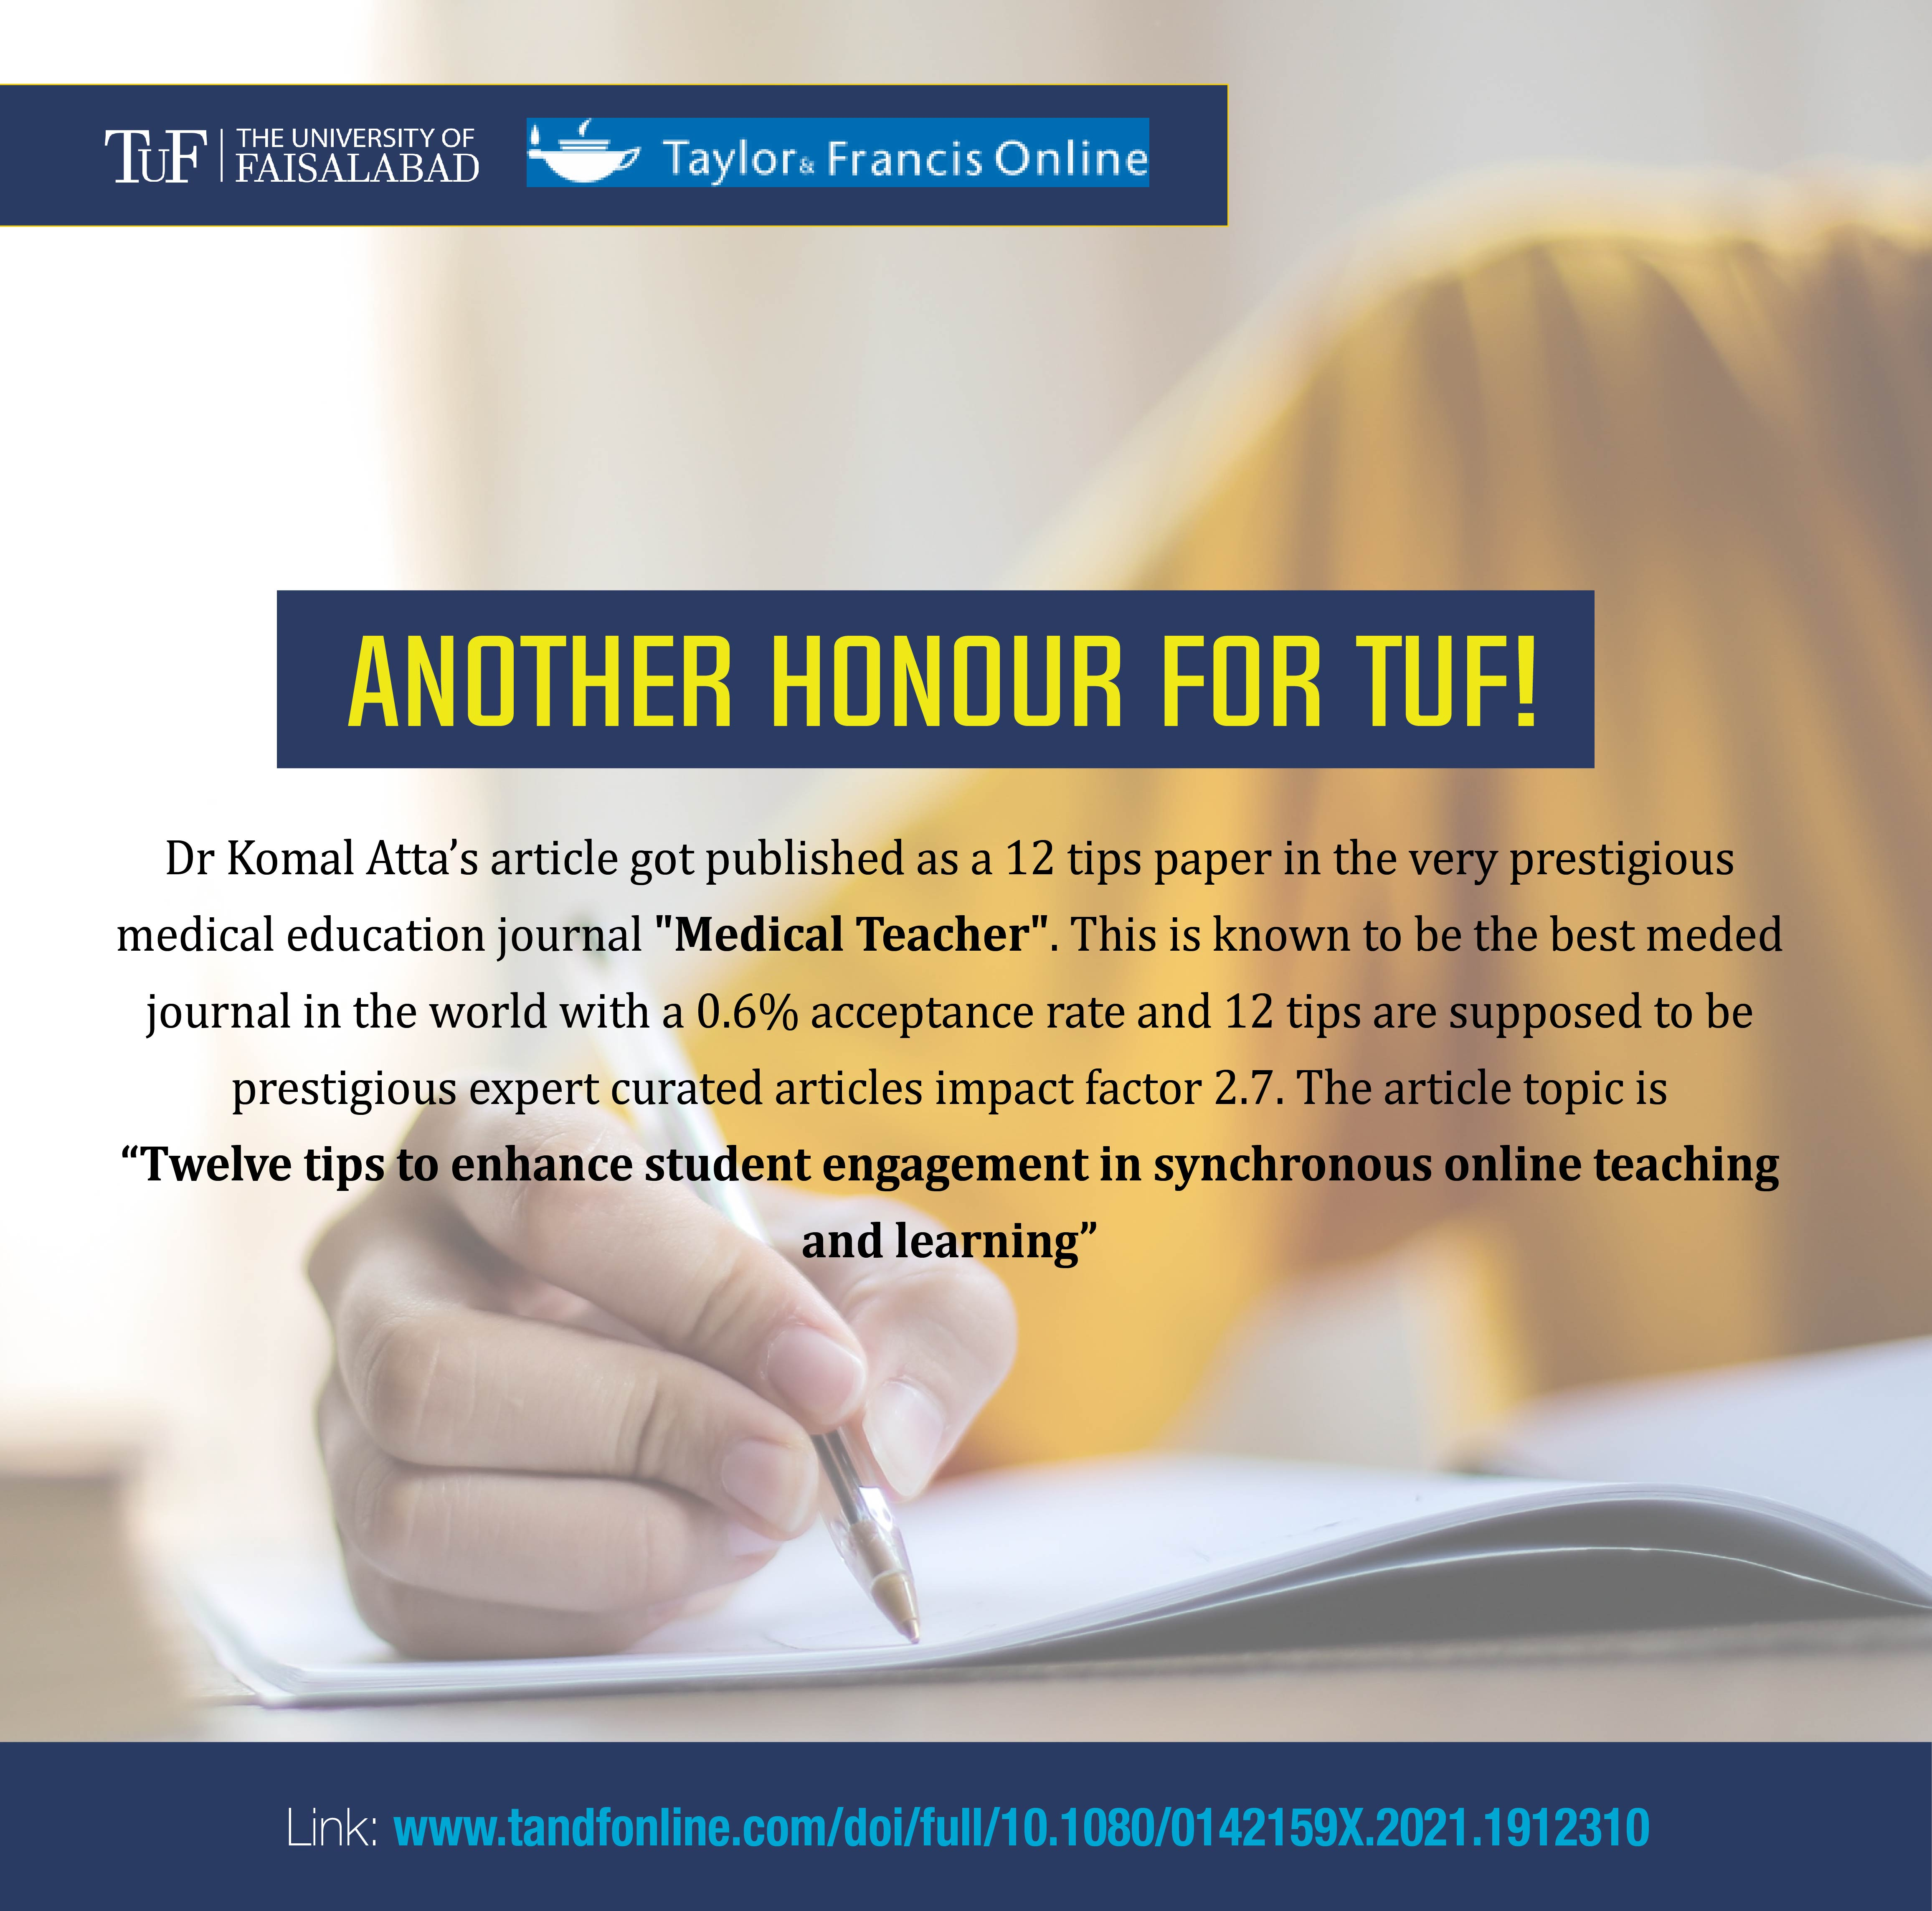 """Dr Komal's Article published as a 12 tips paper in the very prestigious medical education journal """"Medical Teacher""""."""